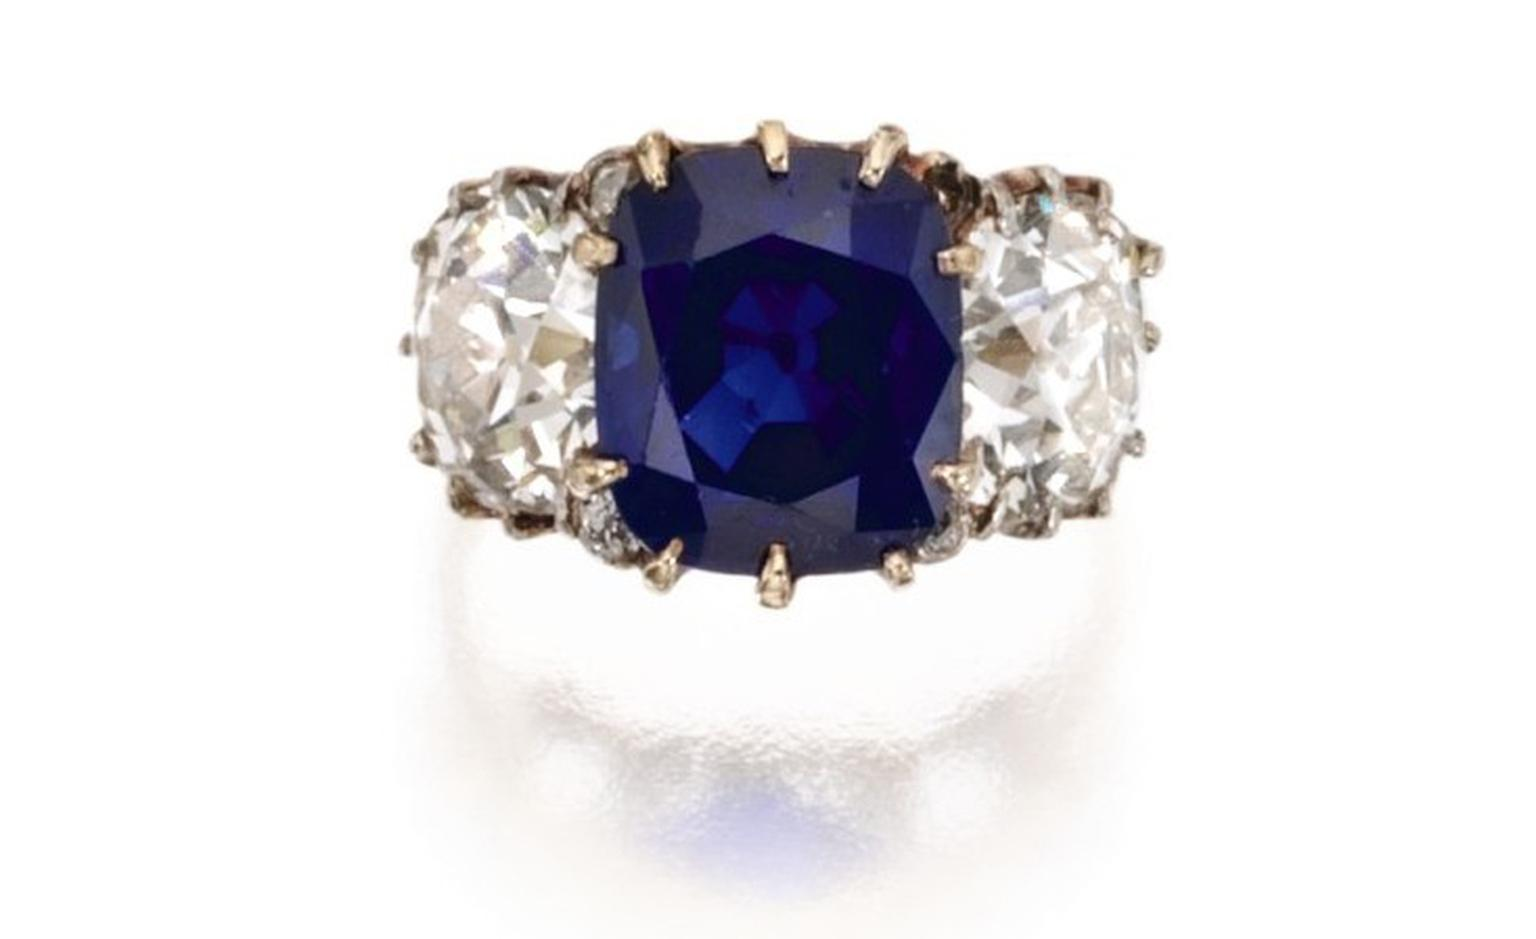 Lot 186 Gold, Platinum, Sapphire and Diamond Ring, Circa 1900 Est. $125/150,000. SOLD FOR 458,500